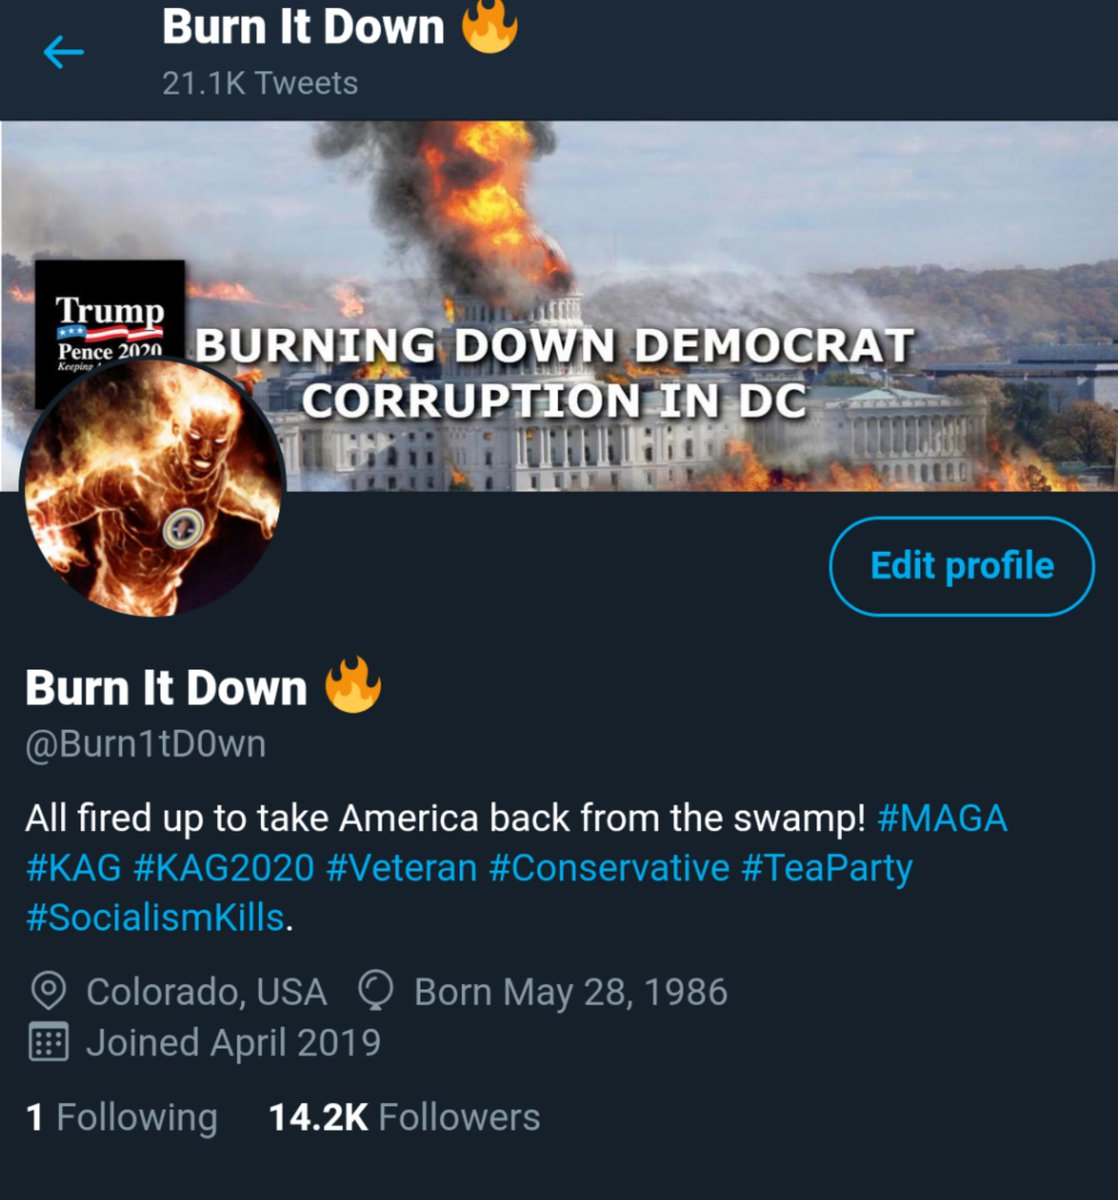 My profile shows I'm only following 1 person, but that's a lie! Twitter is screwing with my account! 🤬